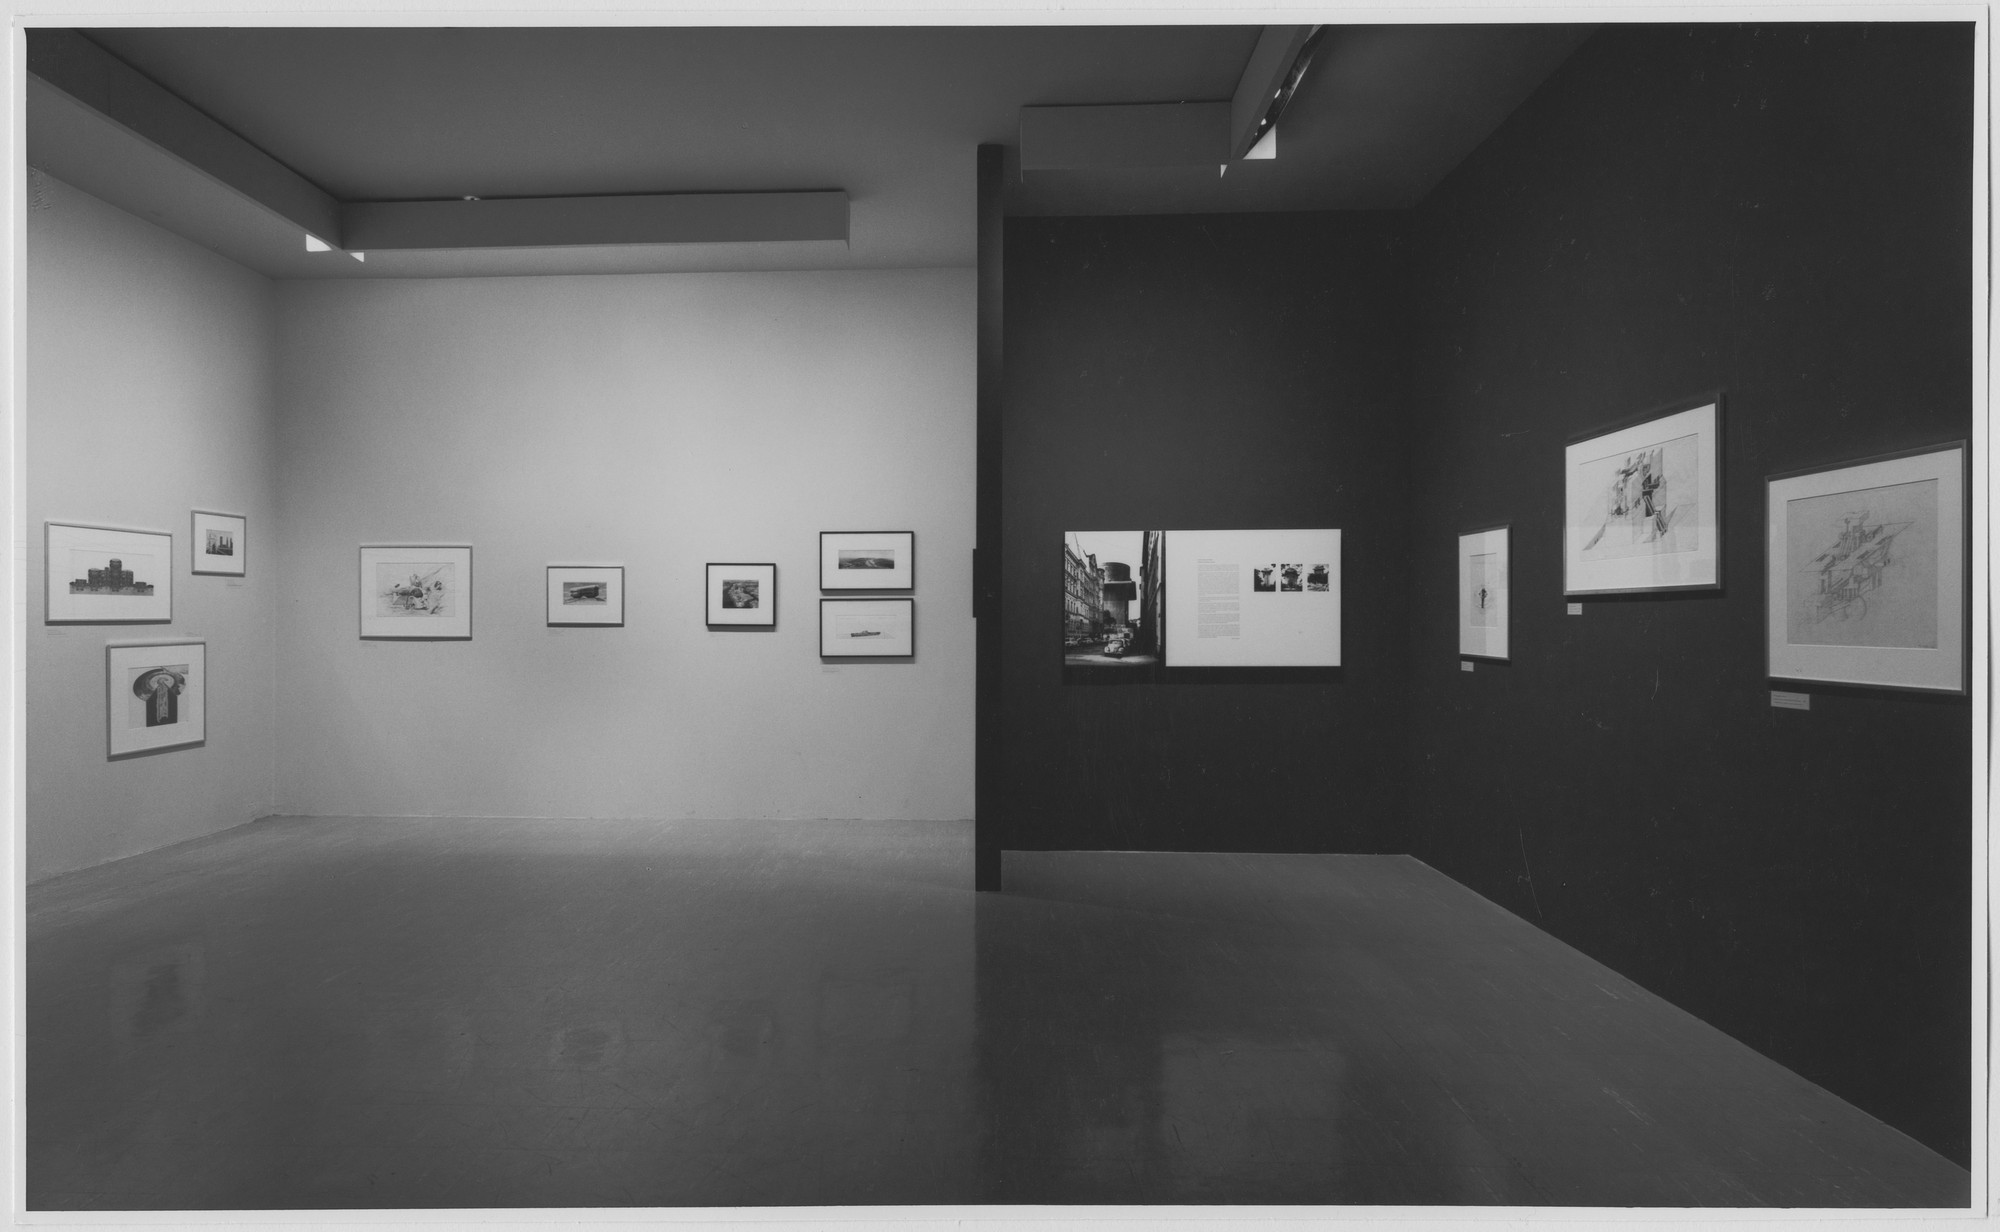 "Installation view of the exhibition, ""Architectural Fantasies:  Drawings from the MoMA Collection."" July 27, 1967–February 12, 1968. Photographic Archive. The Museum of Modern Art Archives, New York. IN836.1. Photograph by George Cserna."